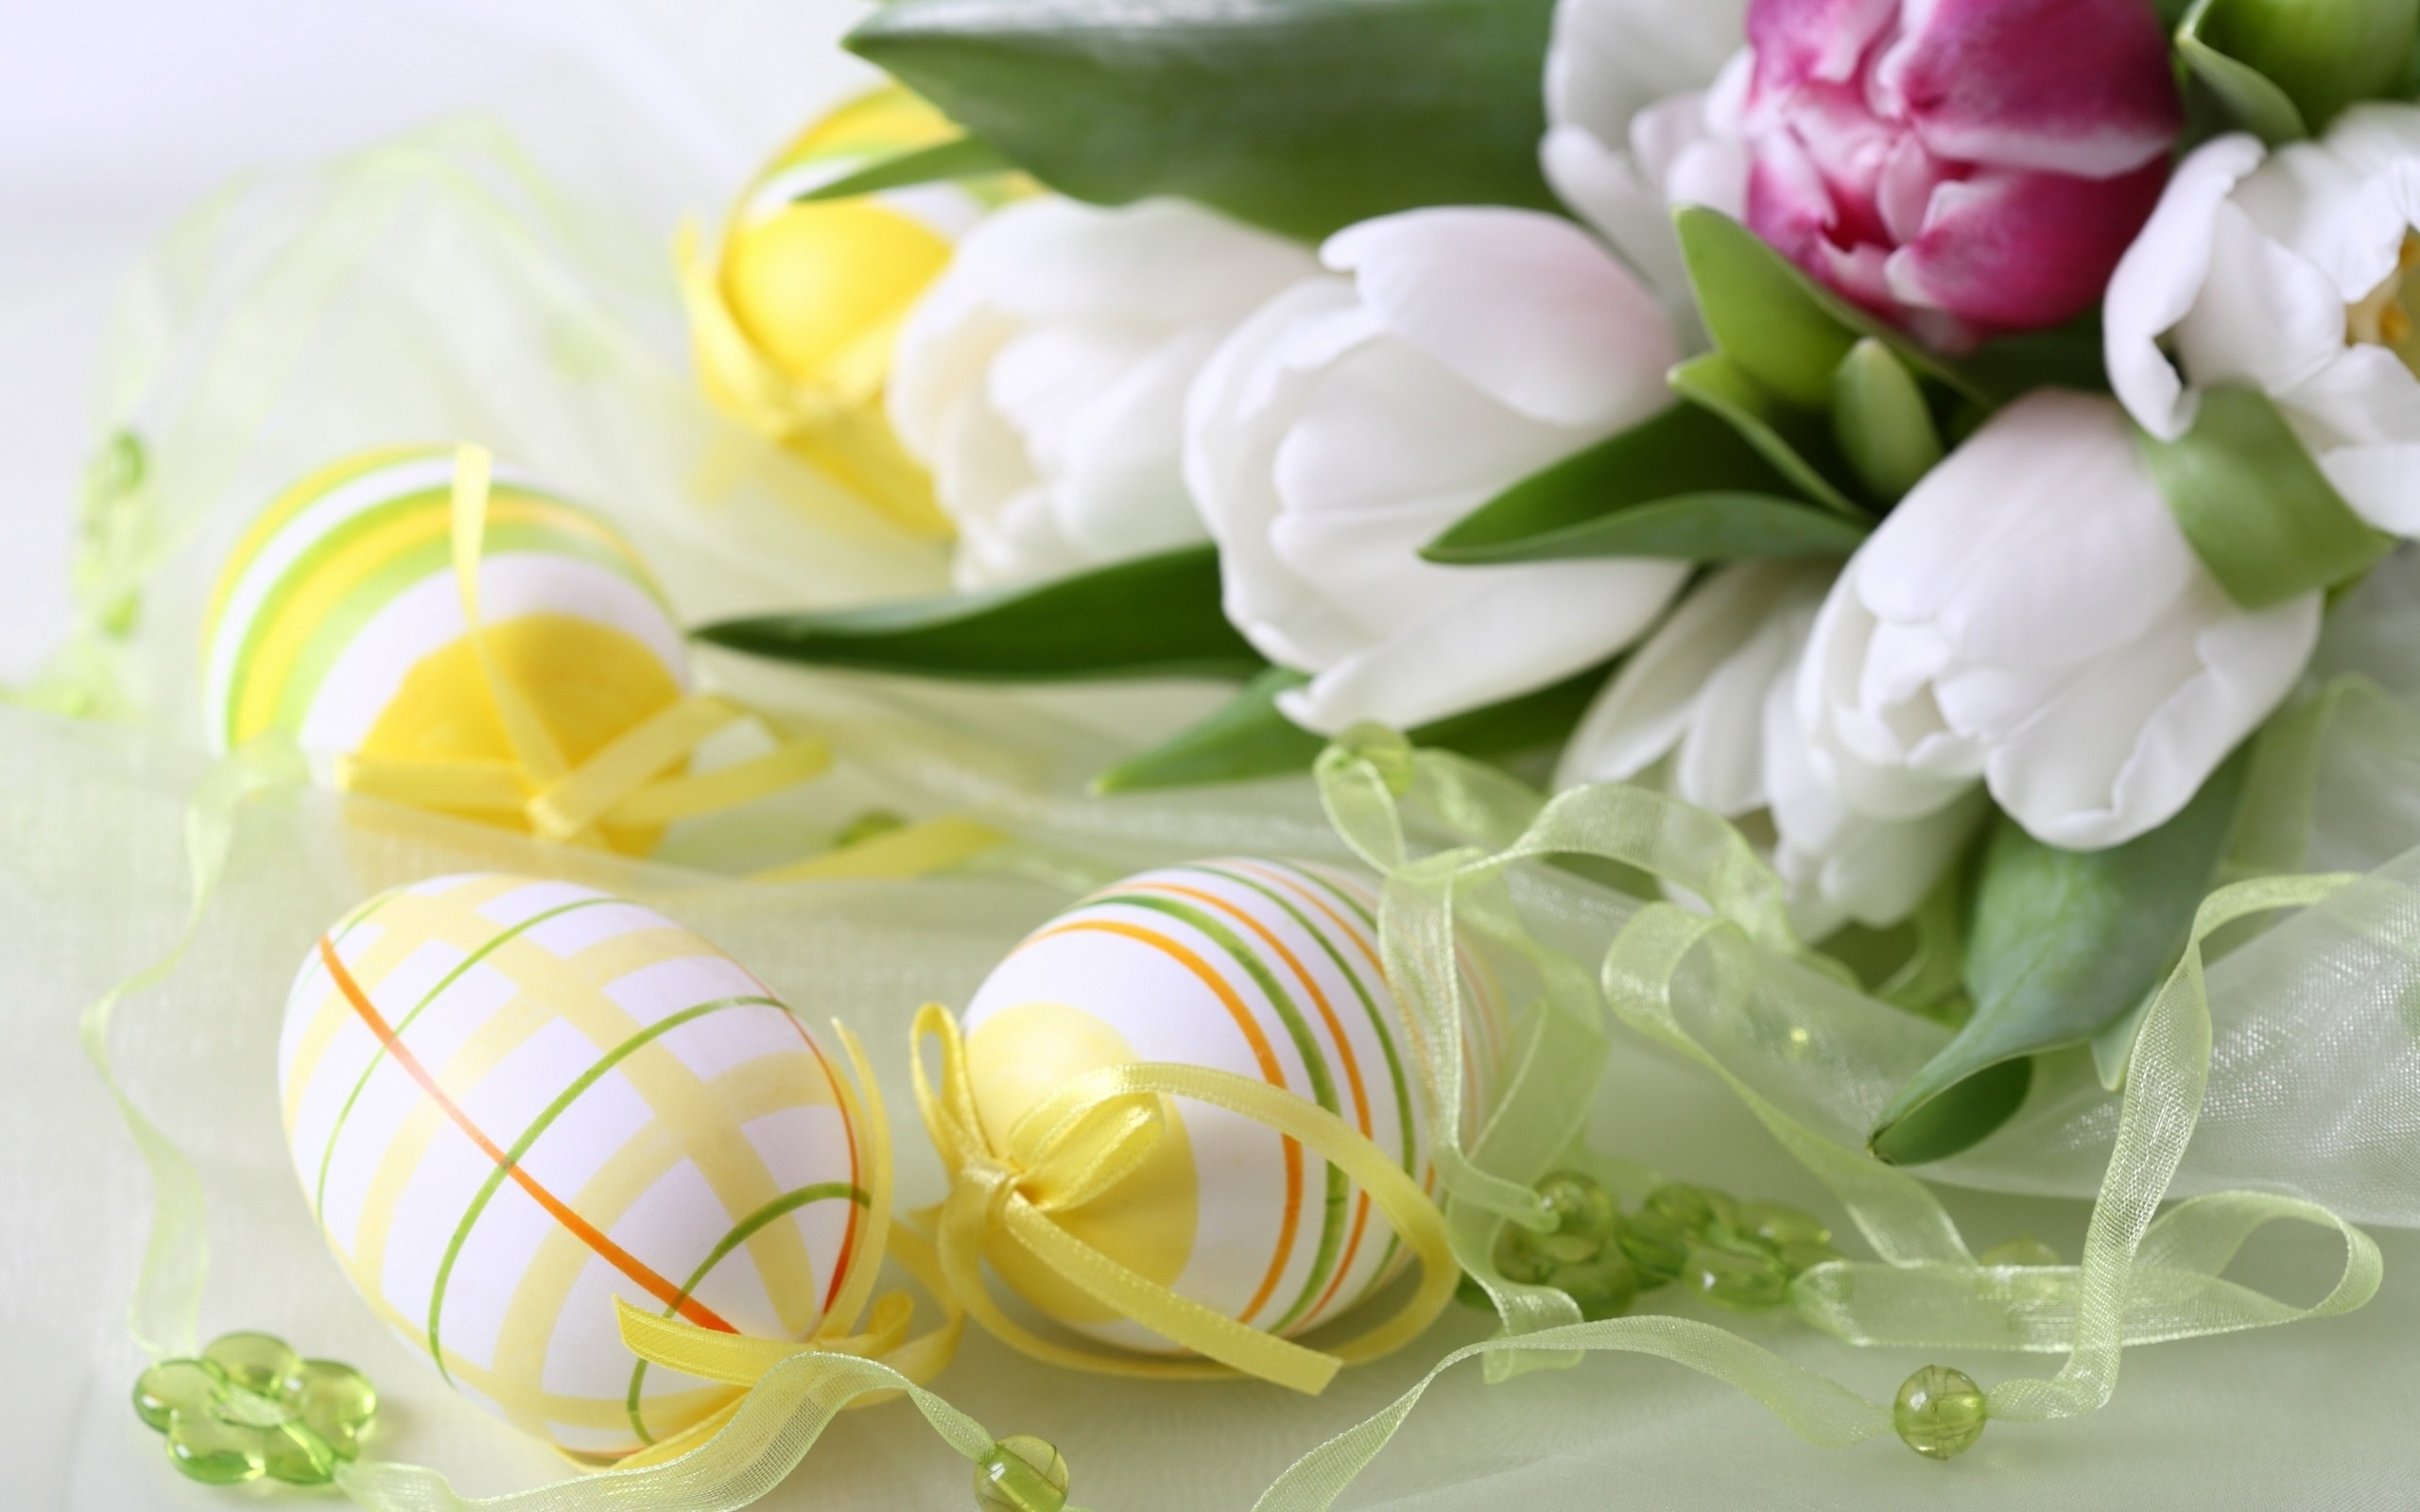 2560x1600 Easter Tulips and Decorations wallpaper